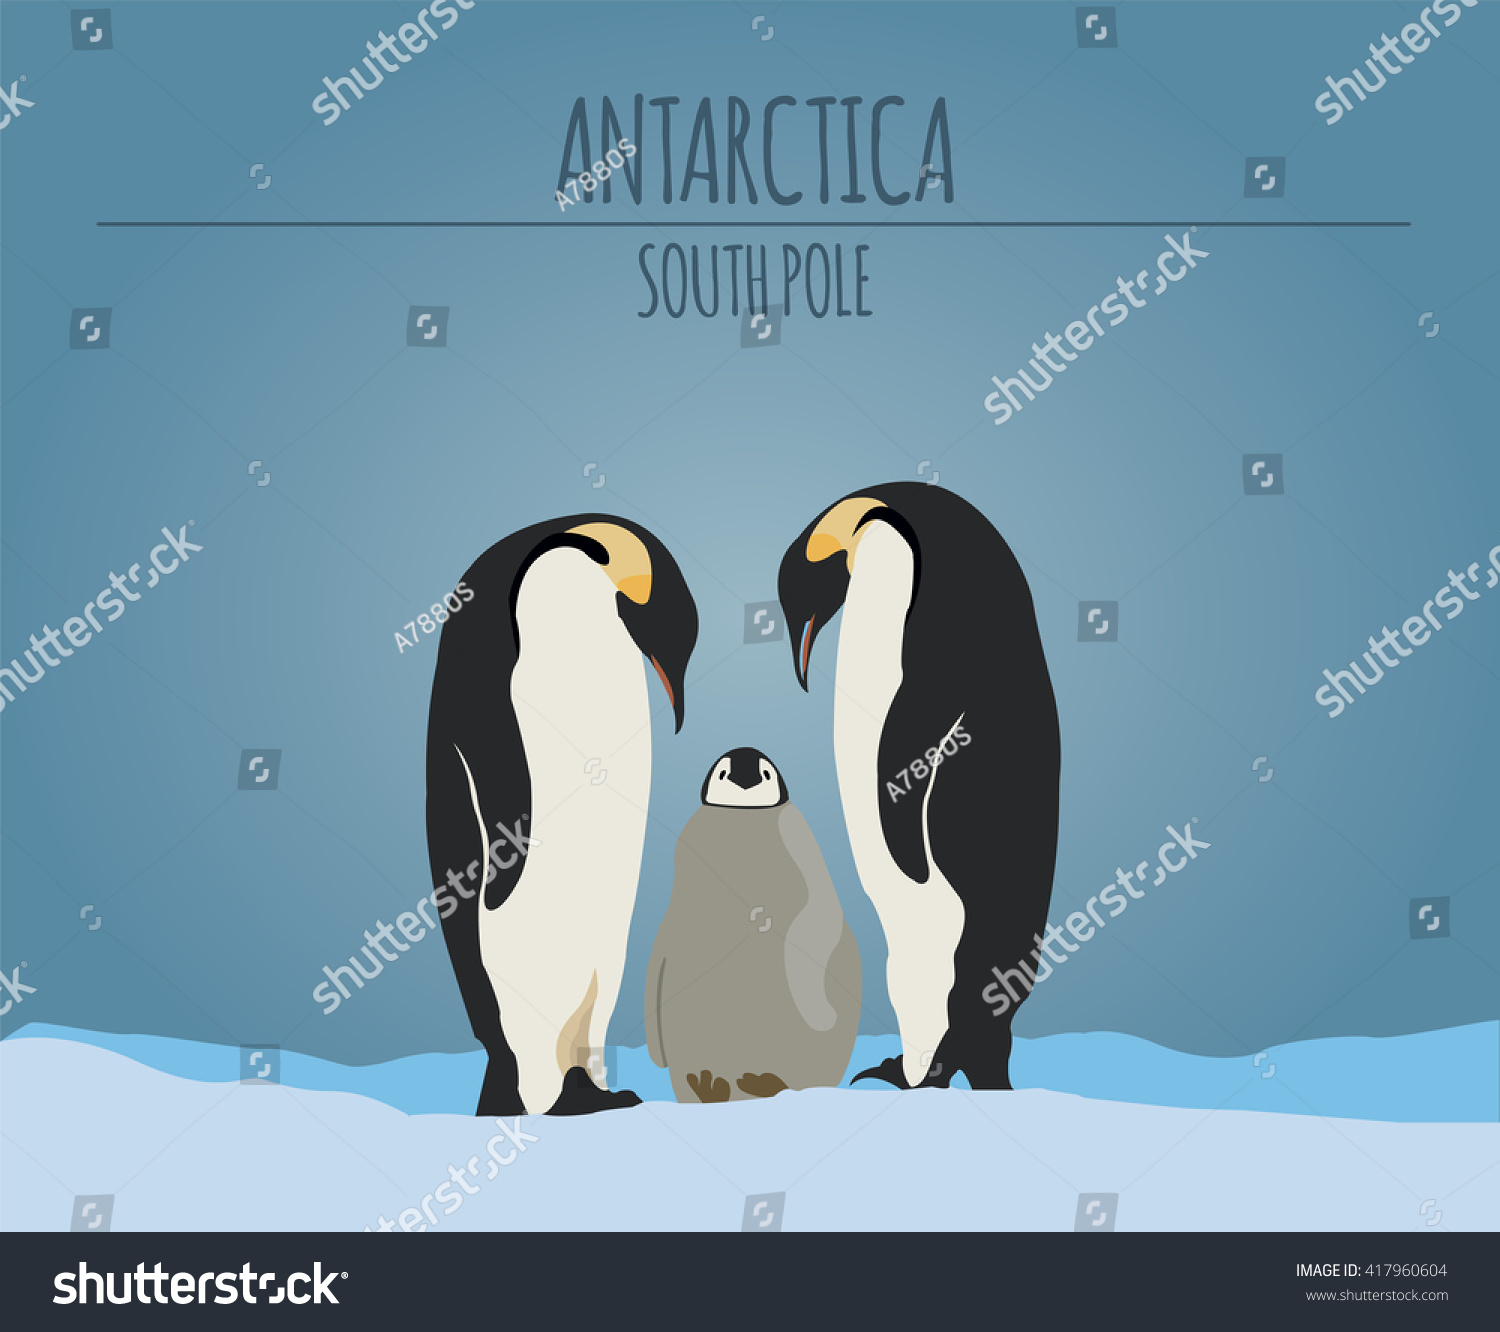 antarctica south pole graphic template vector illustration